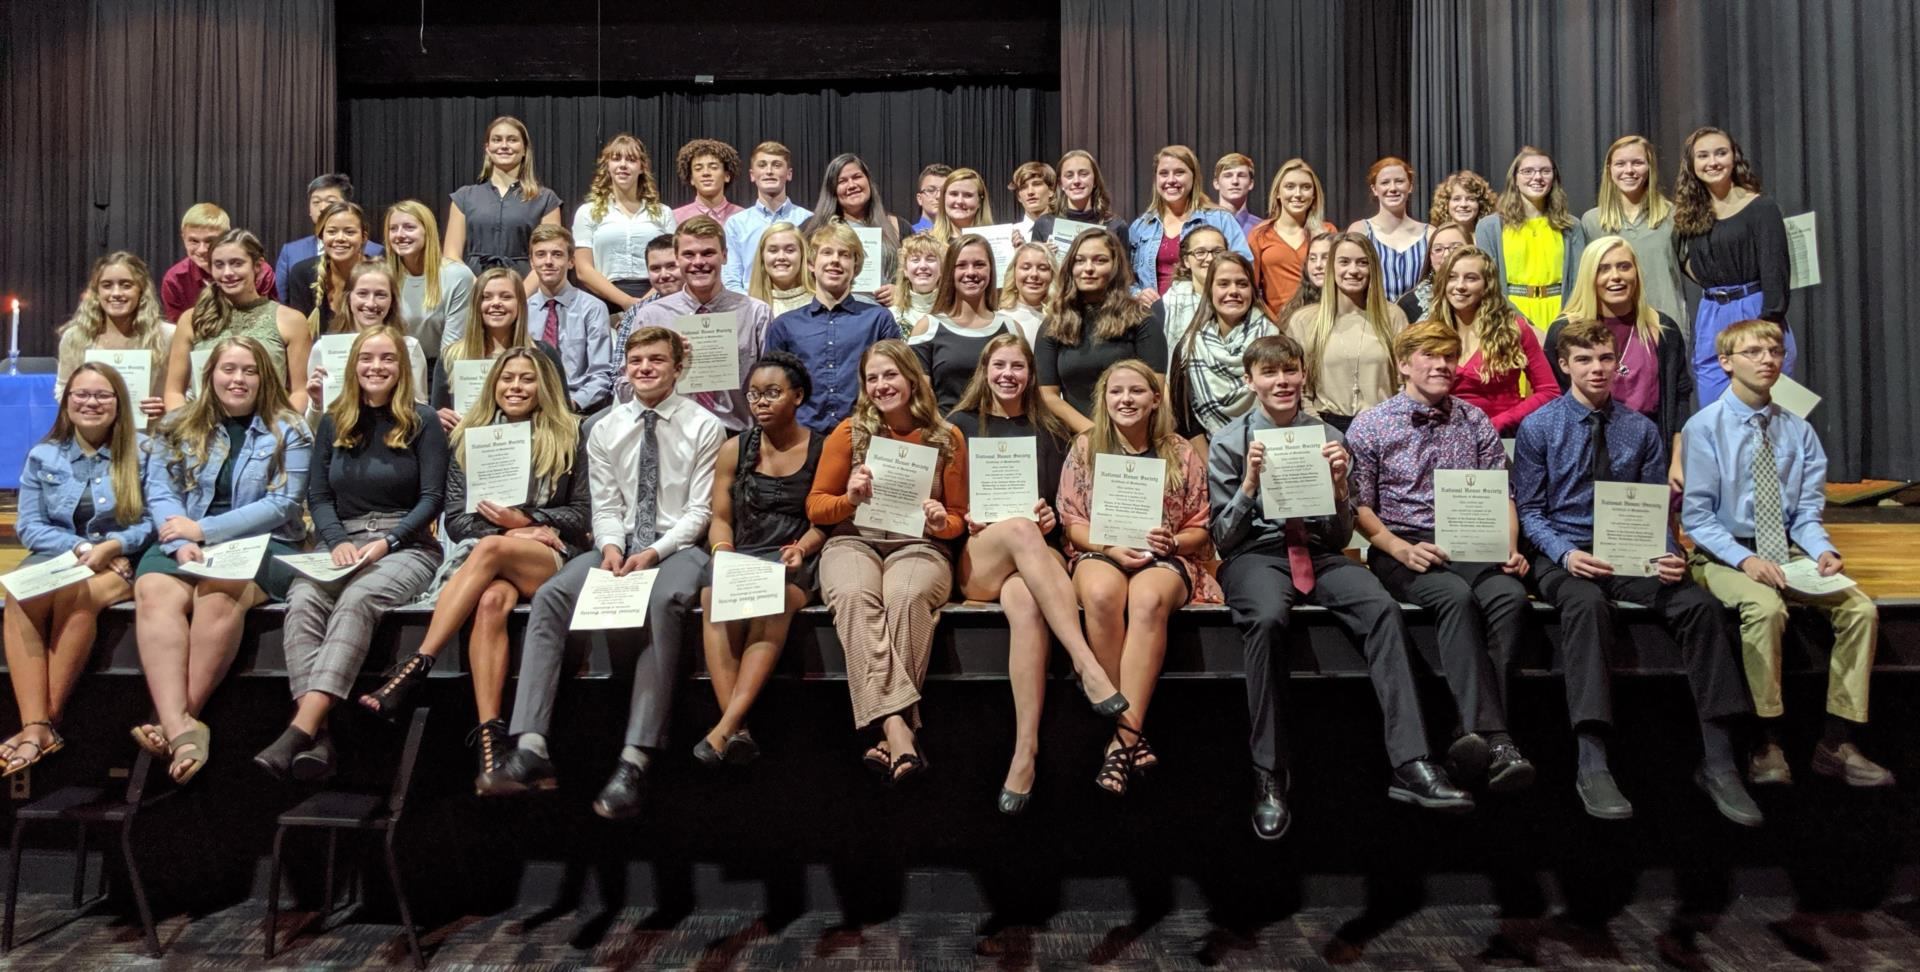 New National Honor Society members 2019